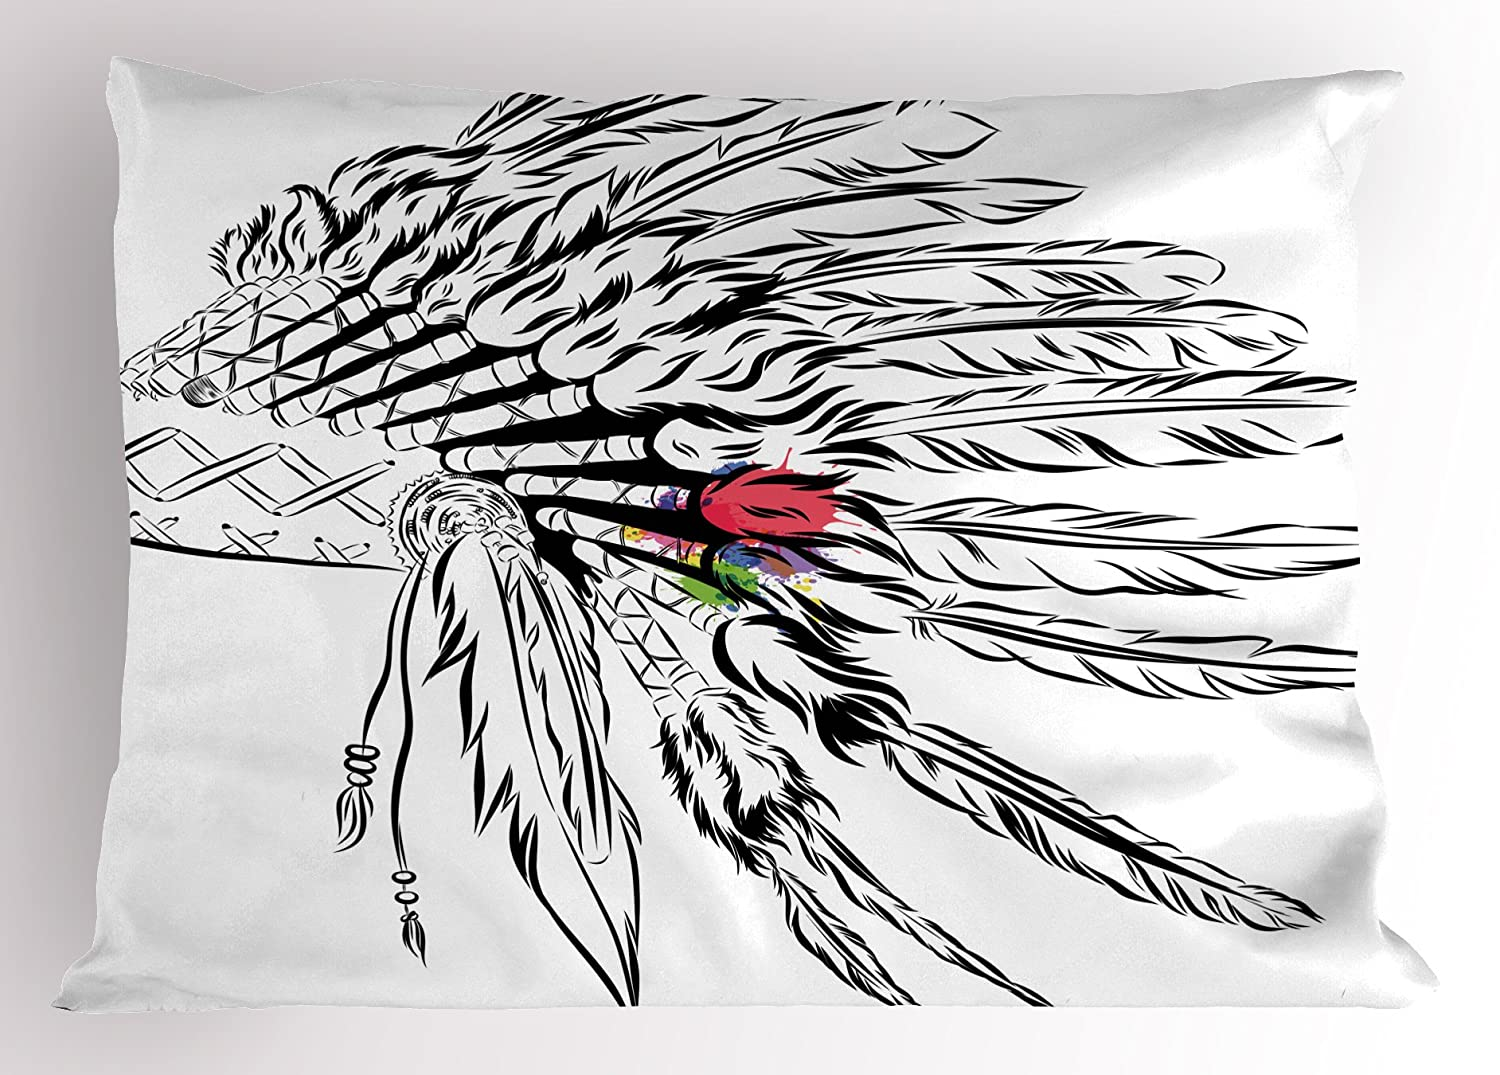 Native american headdress in sketch style with color splashes primitive decorative standard queen size printed pillowcase 30 x 20 inches black white